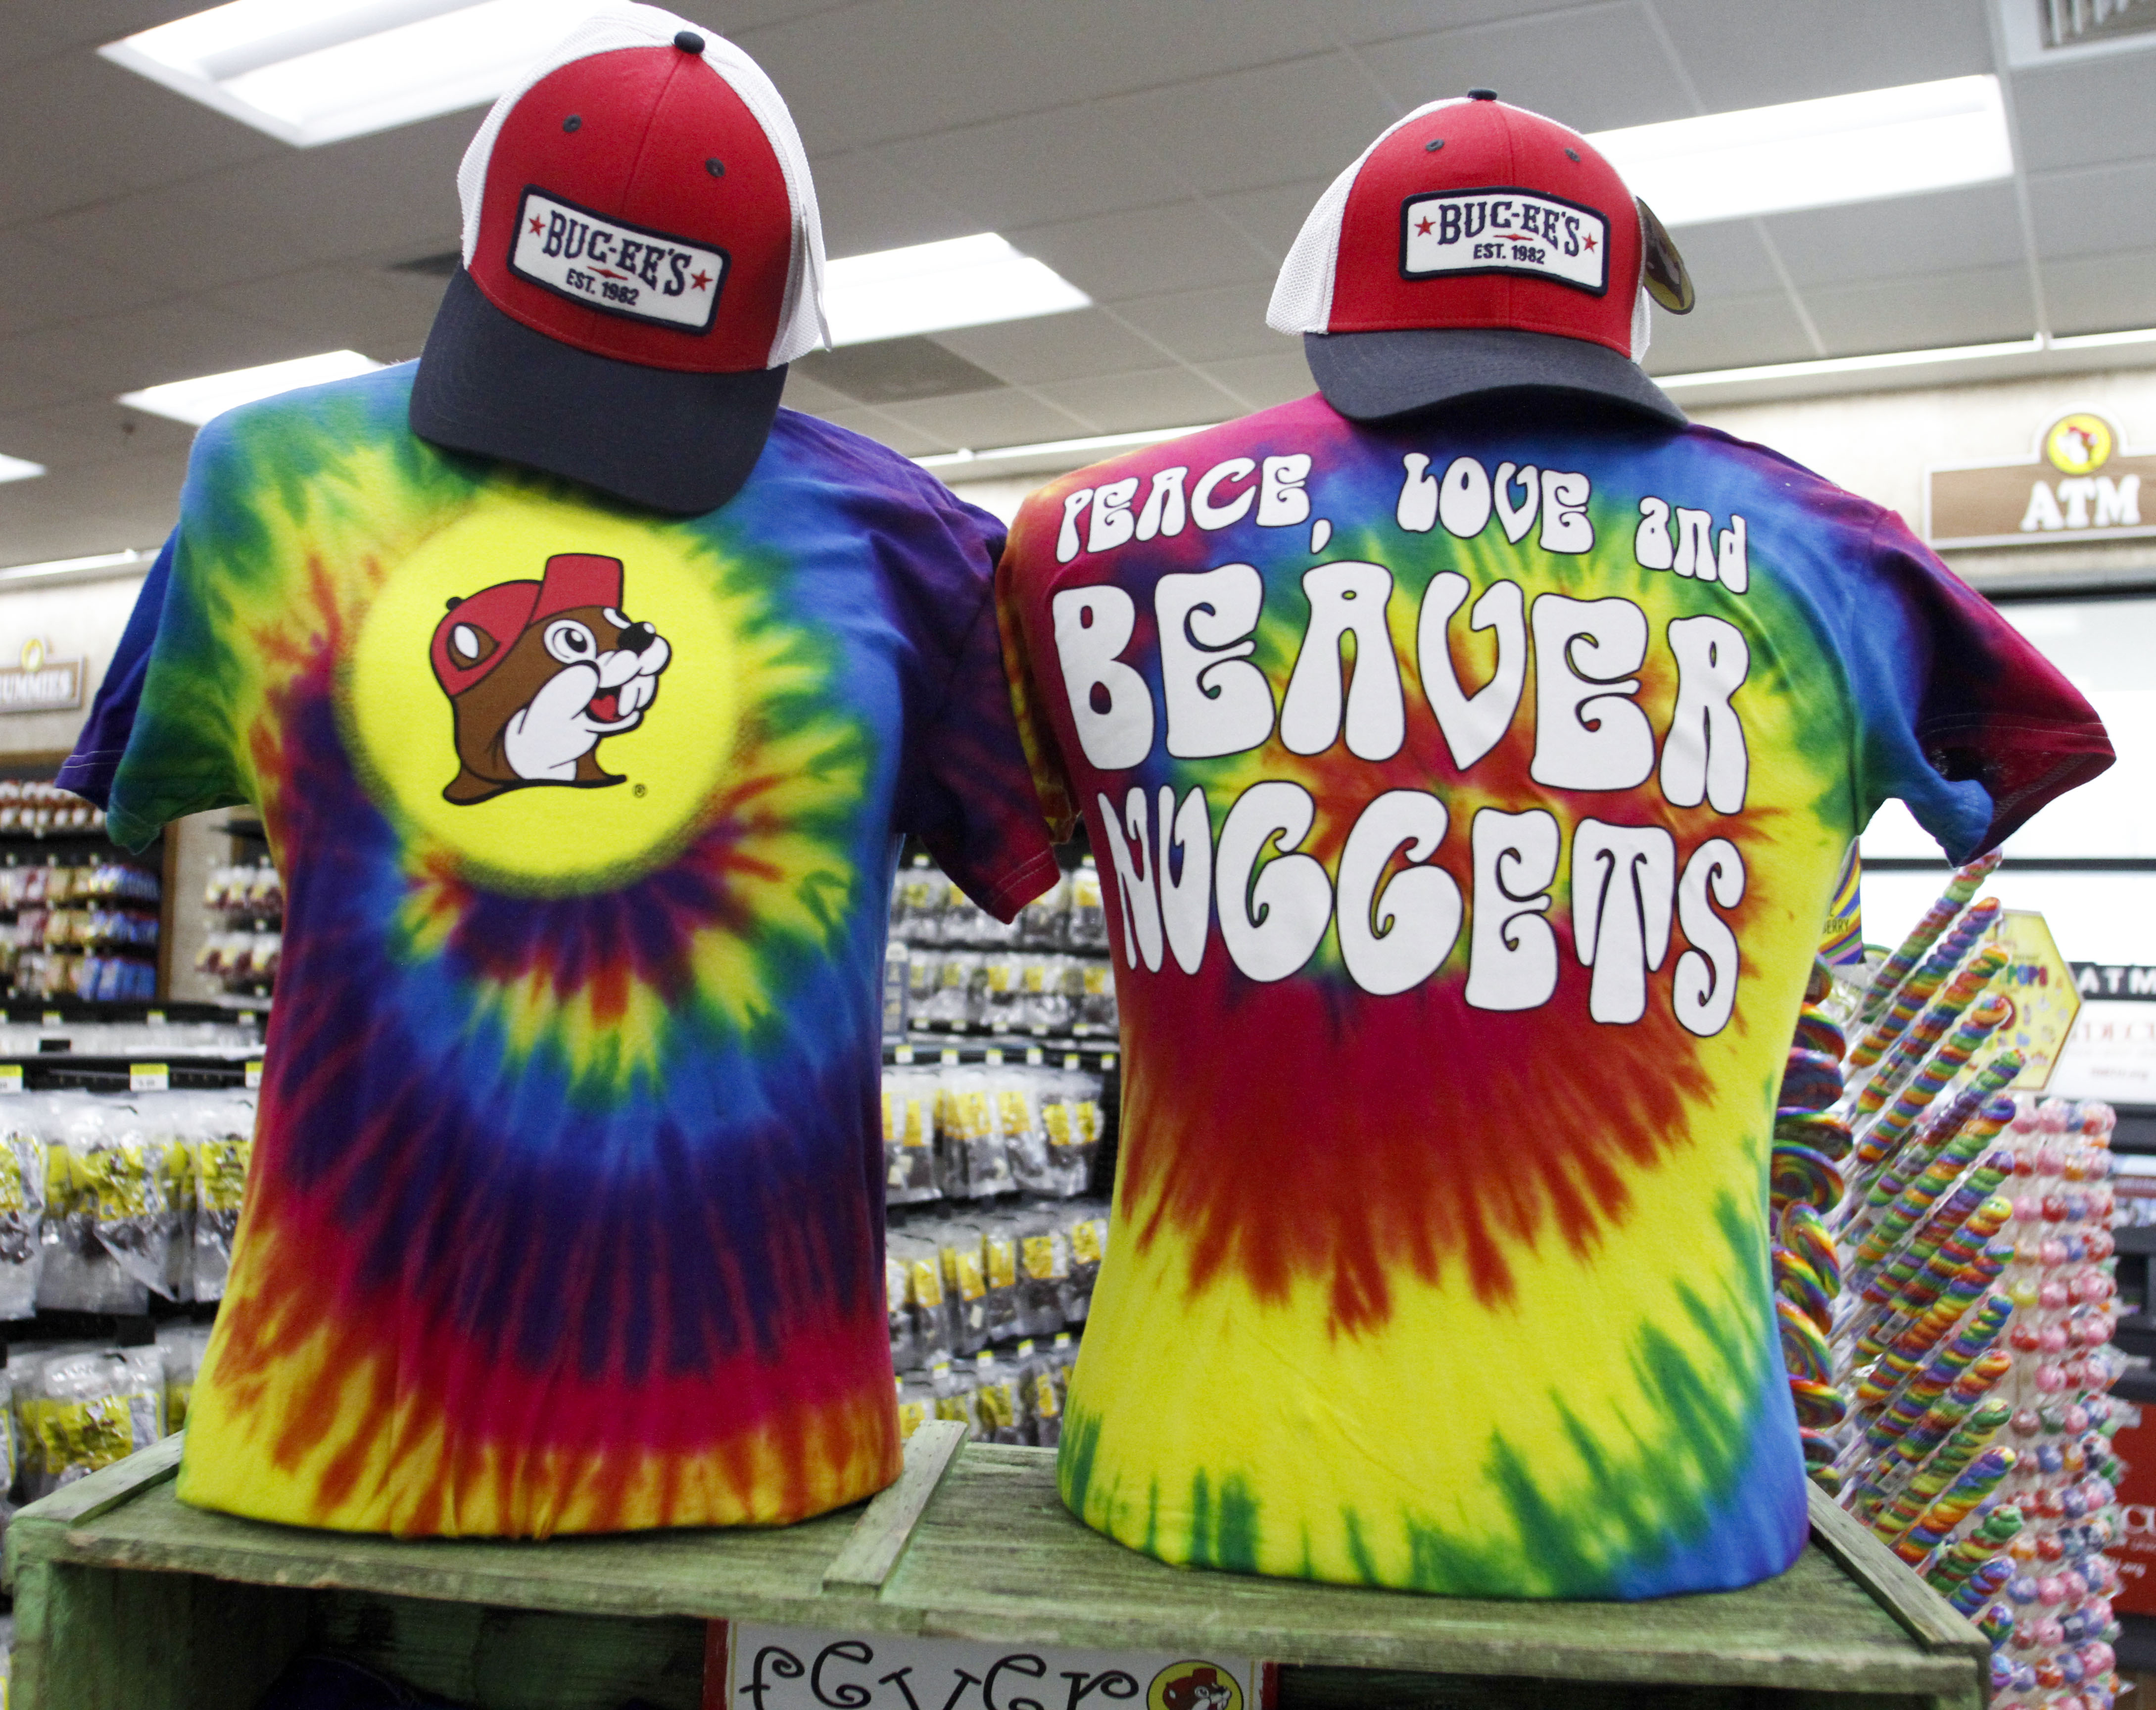 Texans Love Buc Ees But What About The Locals Doing Business In